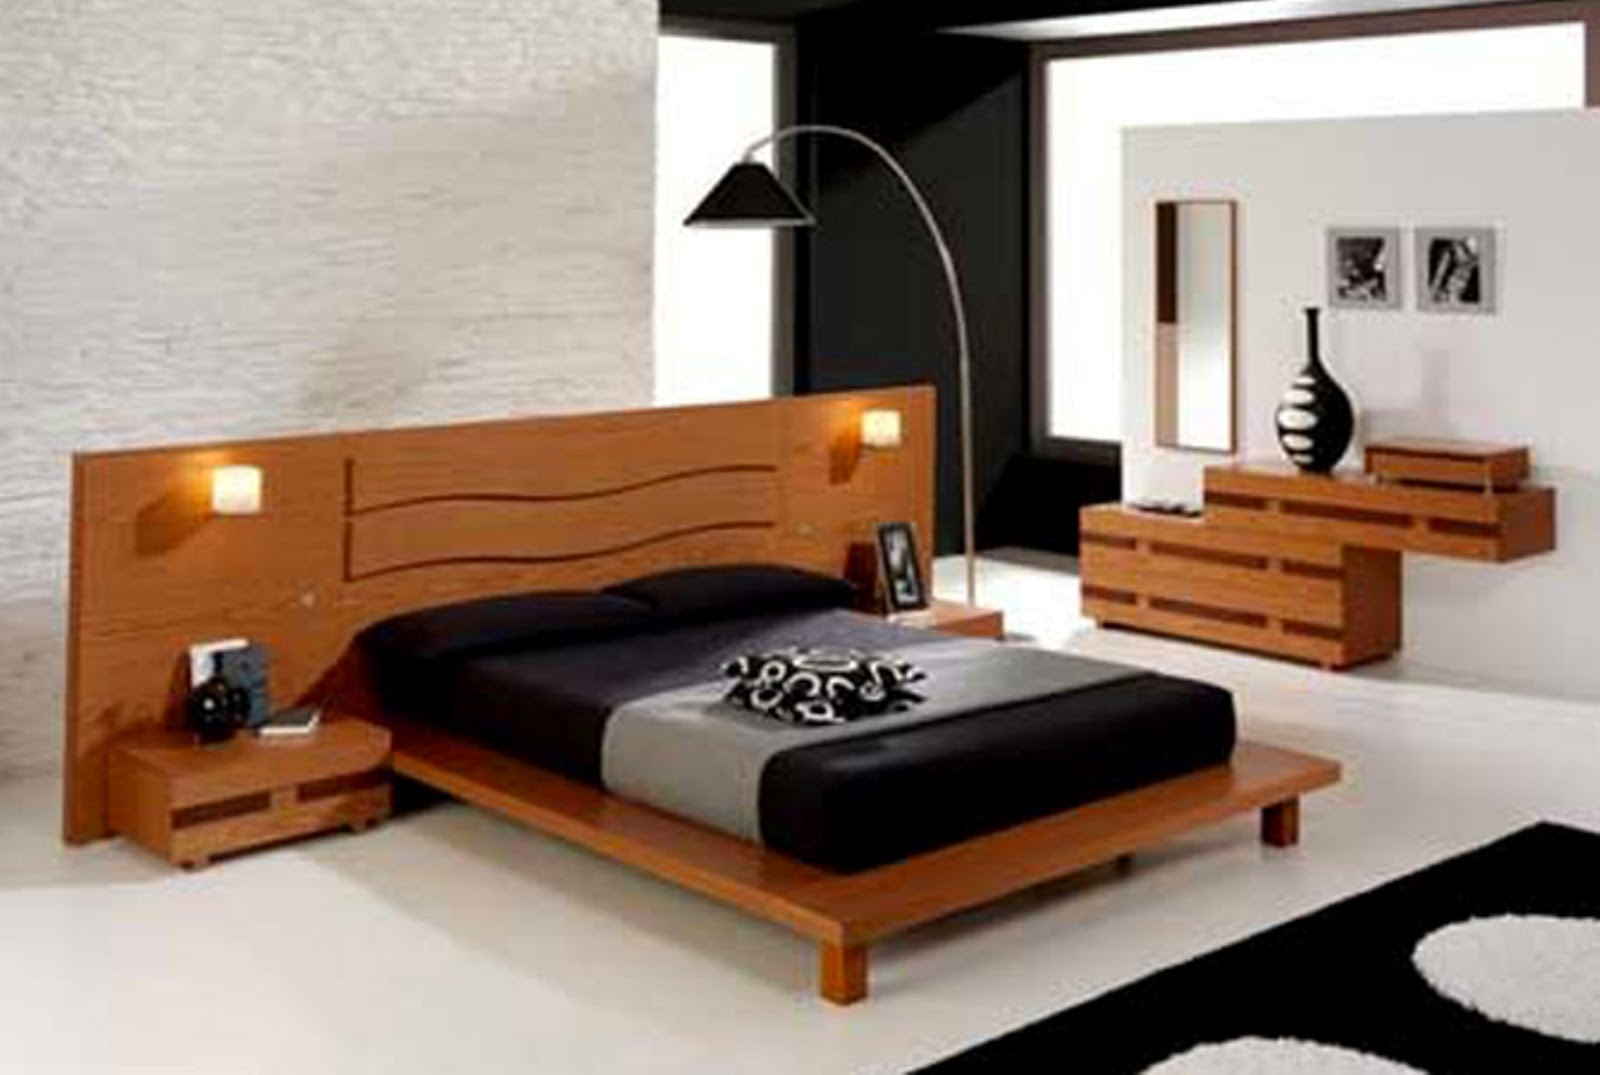 bad design for bedroom - costa-maresme.com - Bad Design 2015